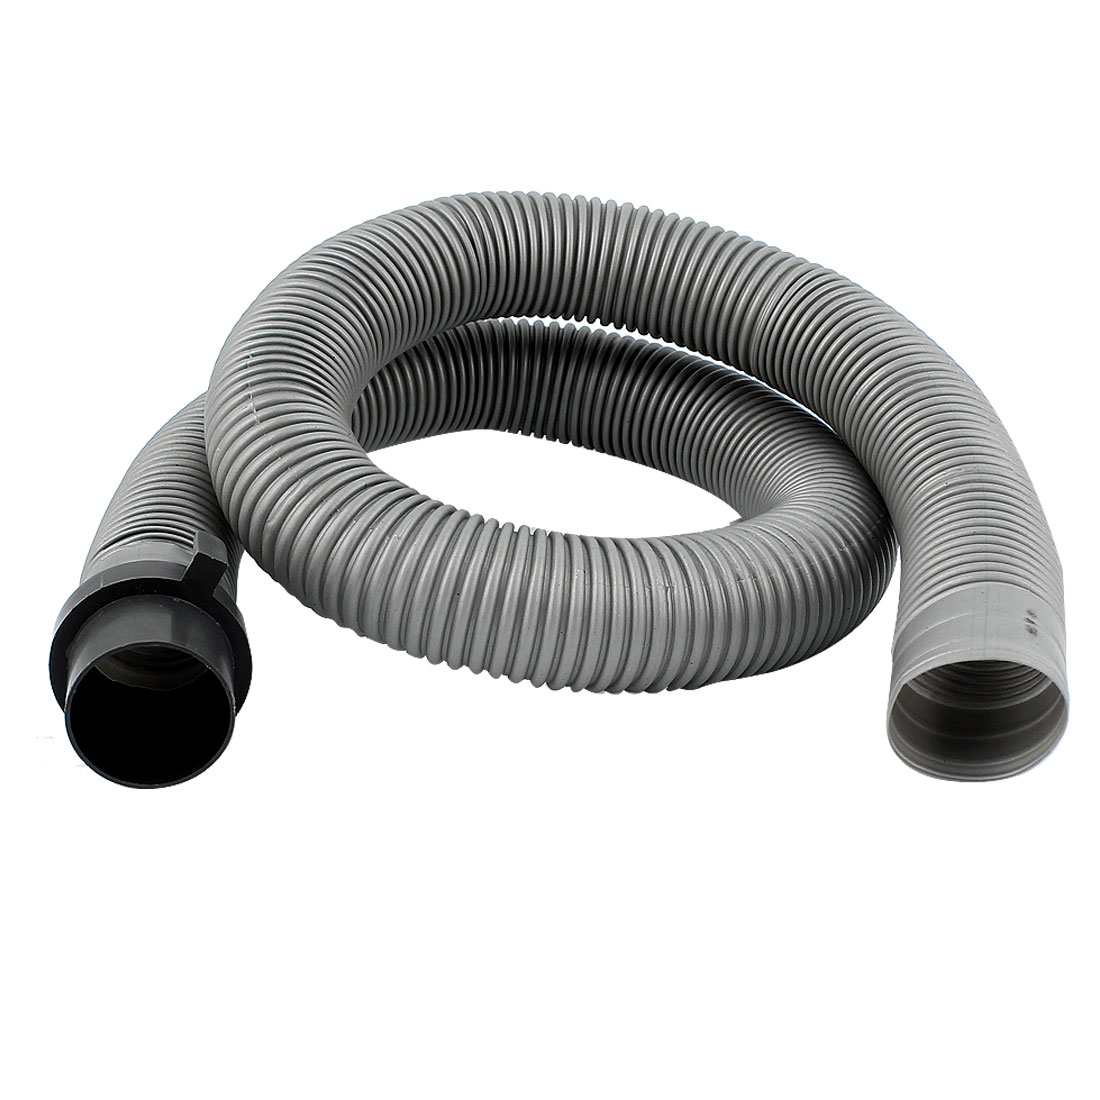 Washer Washing Machine Extendable Outlet Drain Hose Pipe 1.4M Long Gray